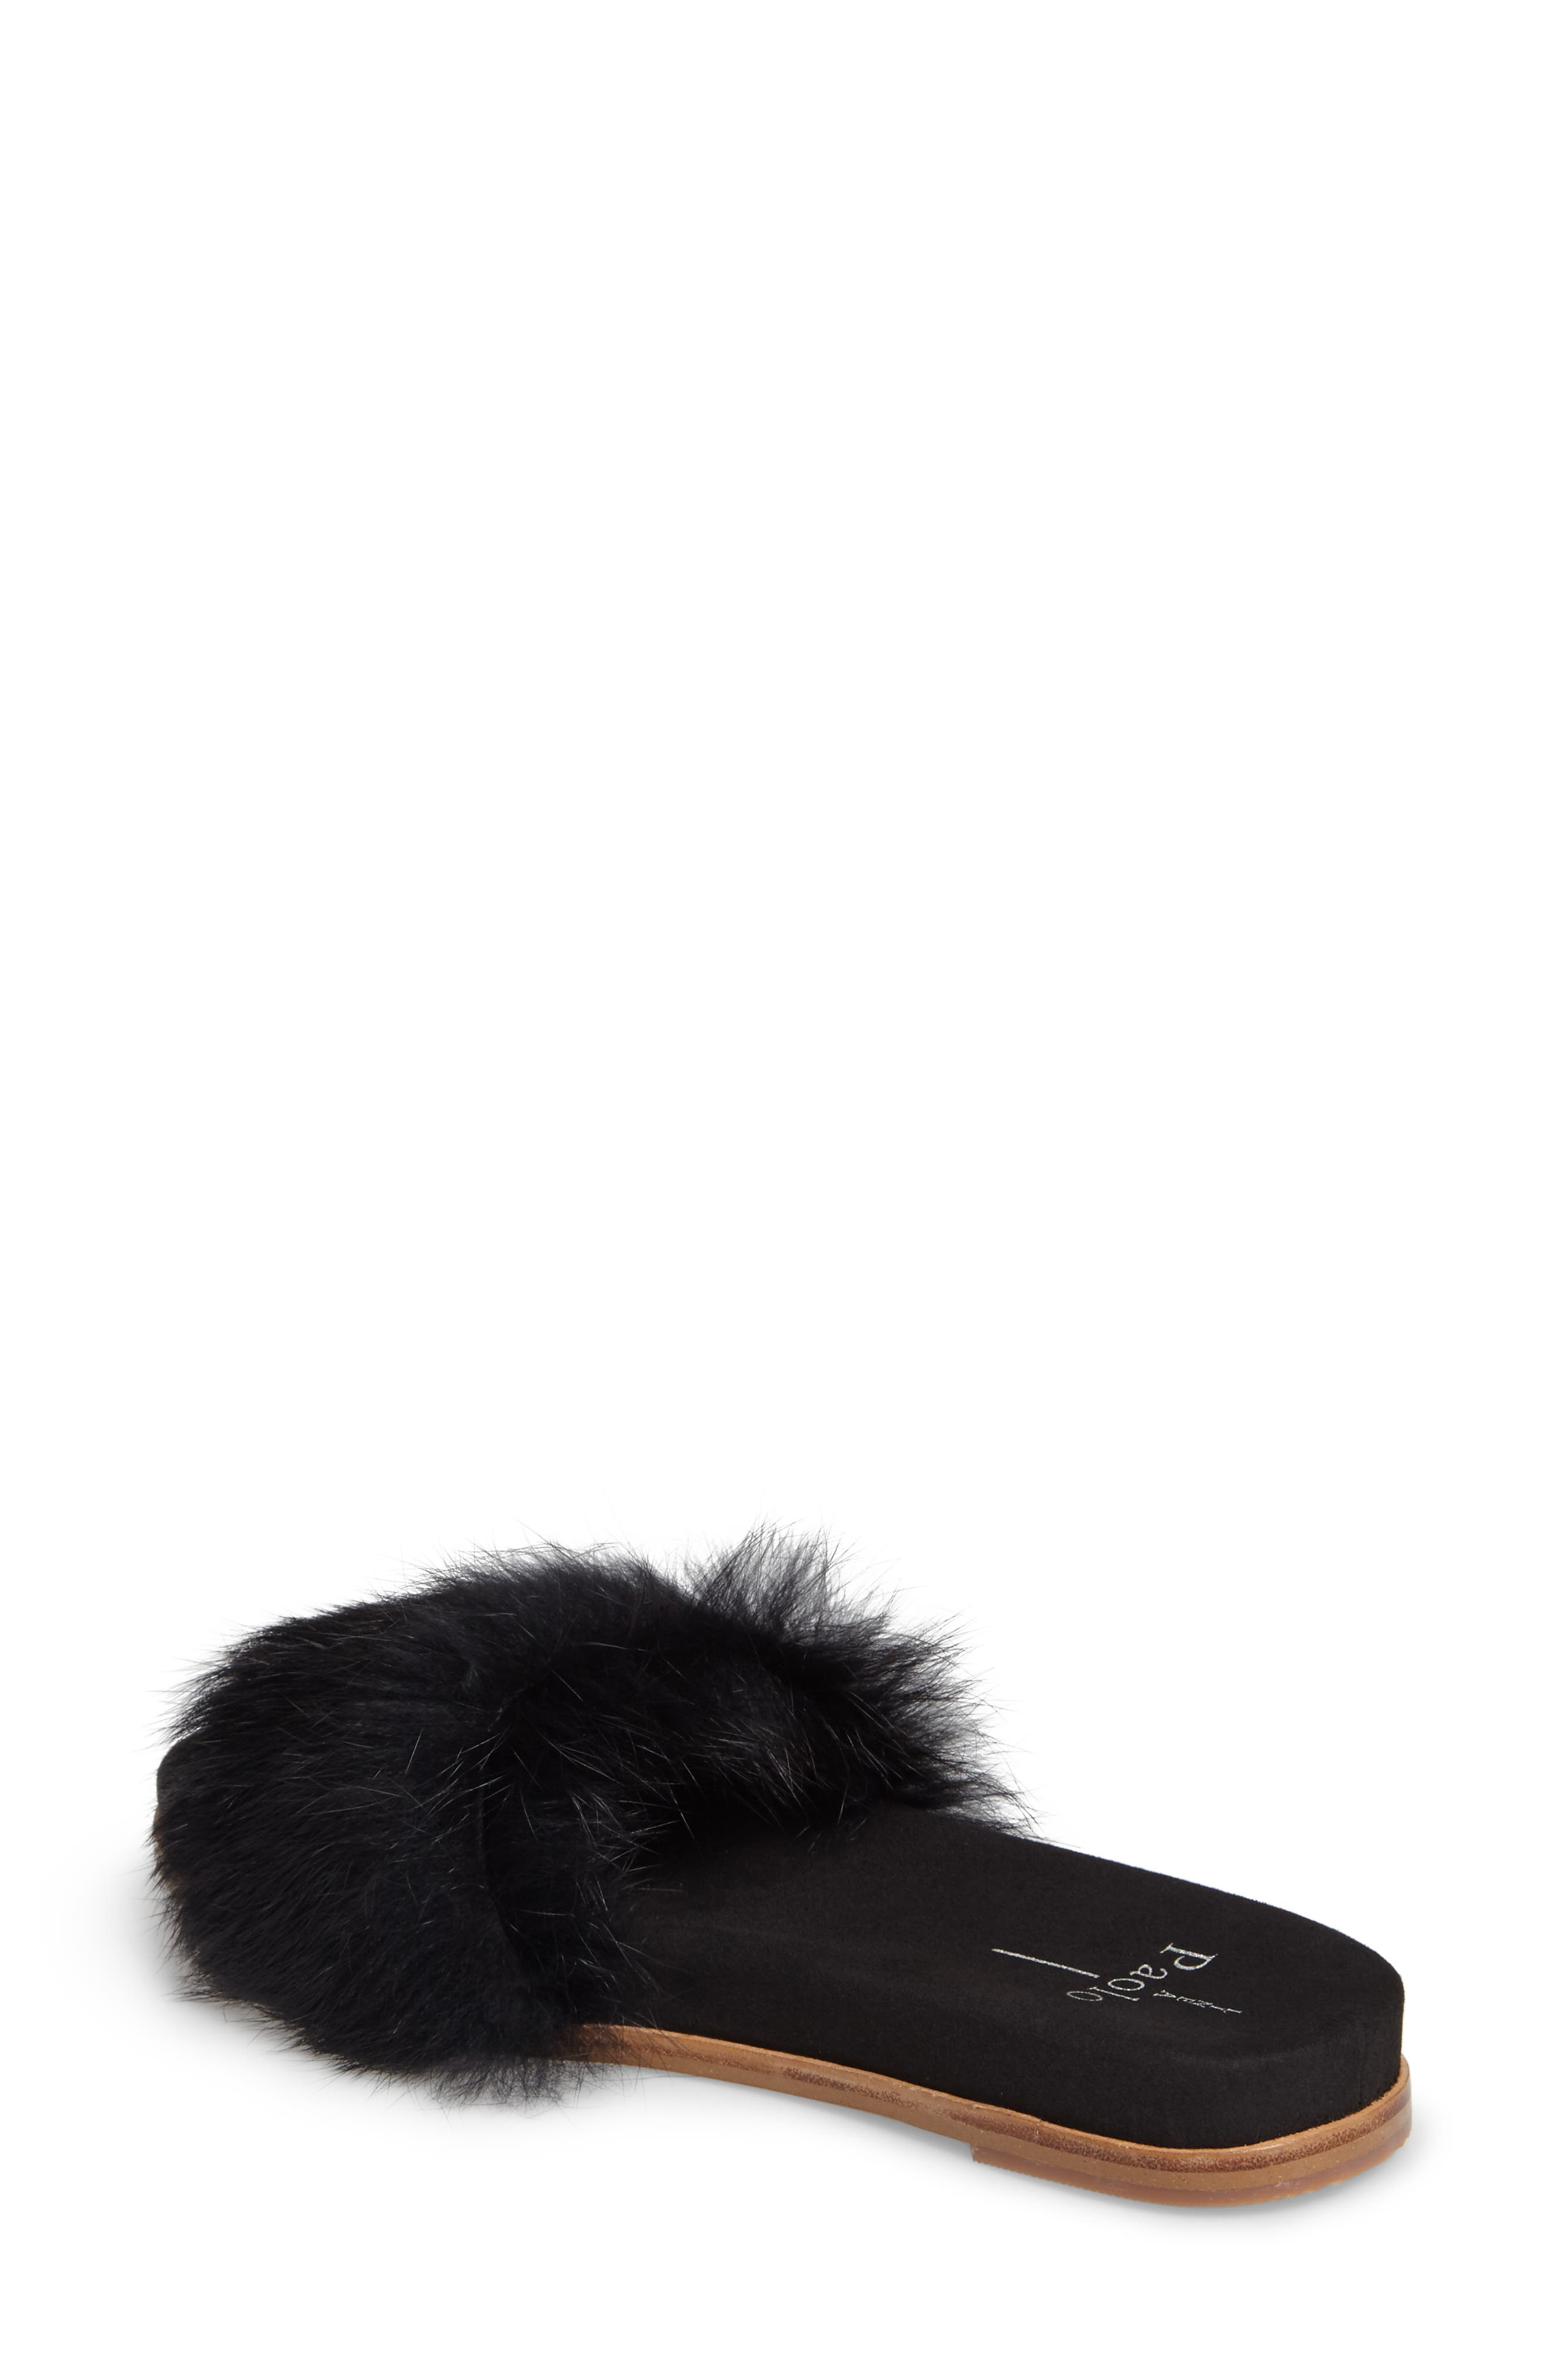 Alternate Image 2  - Linea Paolo Lisa Genuine Rabbit Fur Slide Sandal (Women)